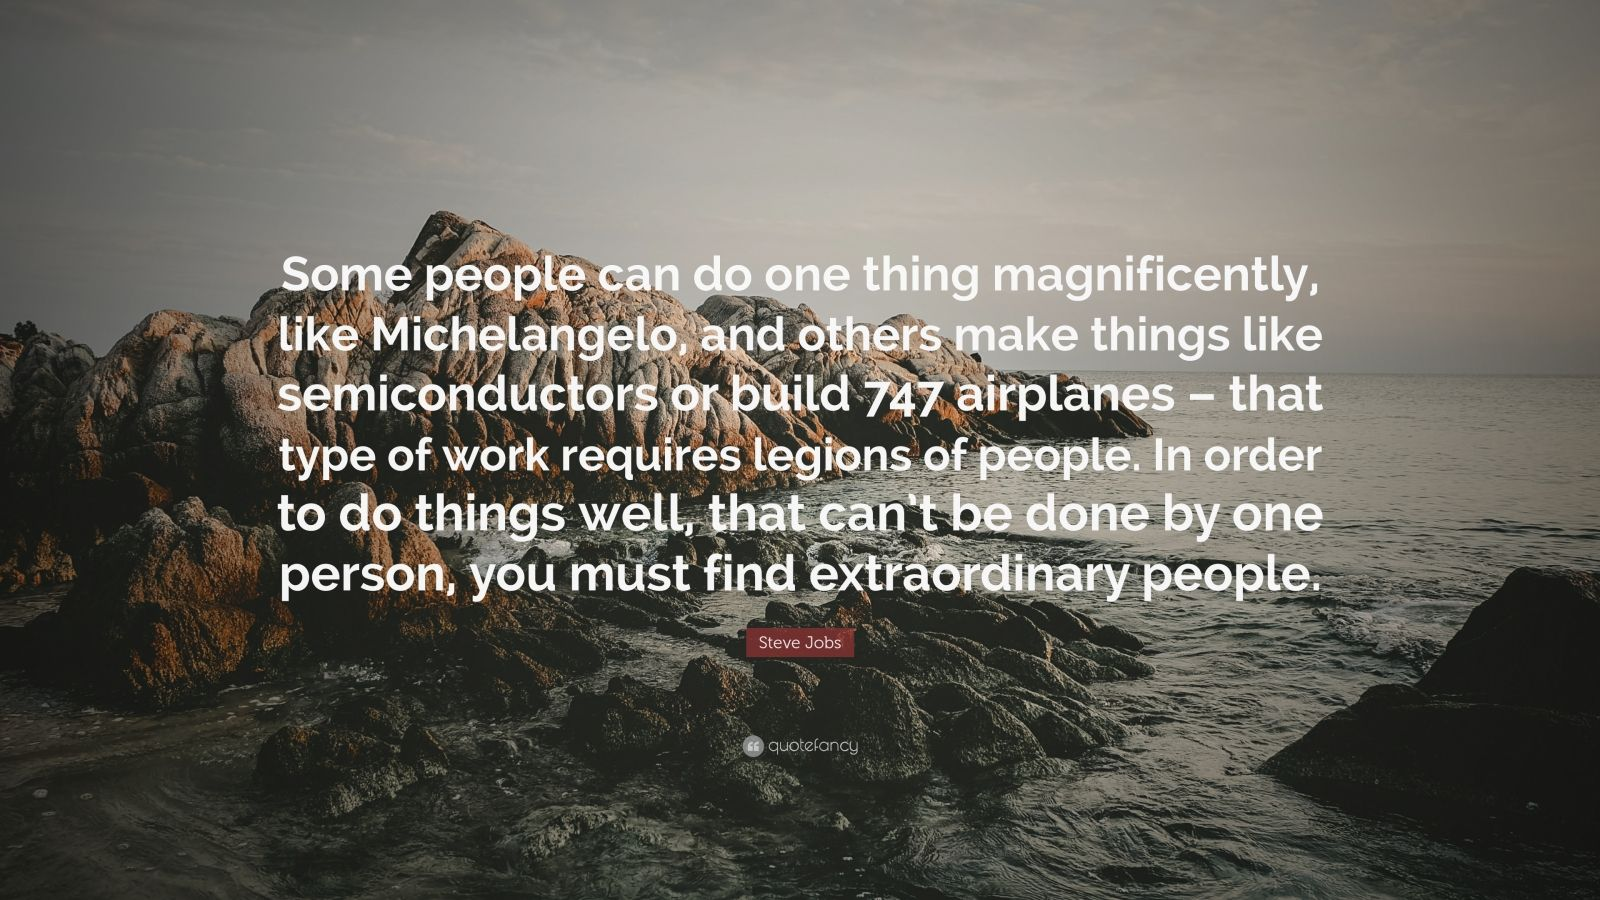 "Steve Jobs Quote: ""Some people can do one thing magnificently, like Michelangelo, and others make things like semiconductors or build 747 airplanes – that type of work requires legions of people. In order to do things well, that can't be done by one person, you must find extraordinary people."""